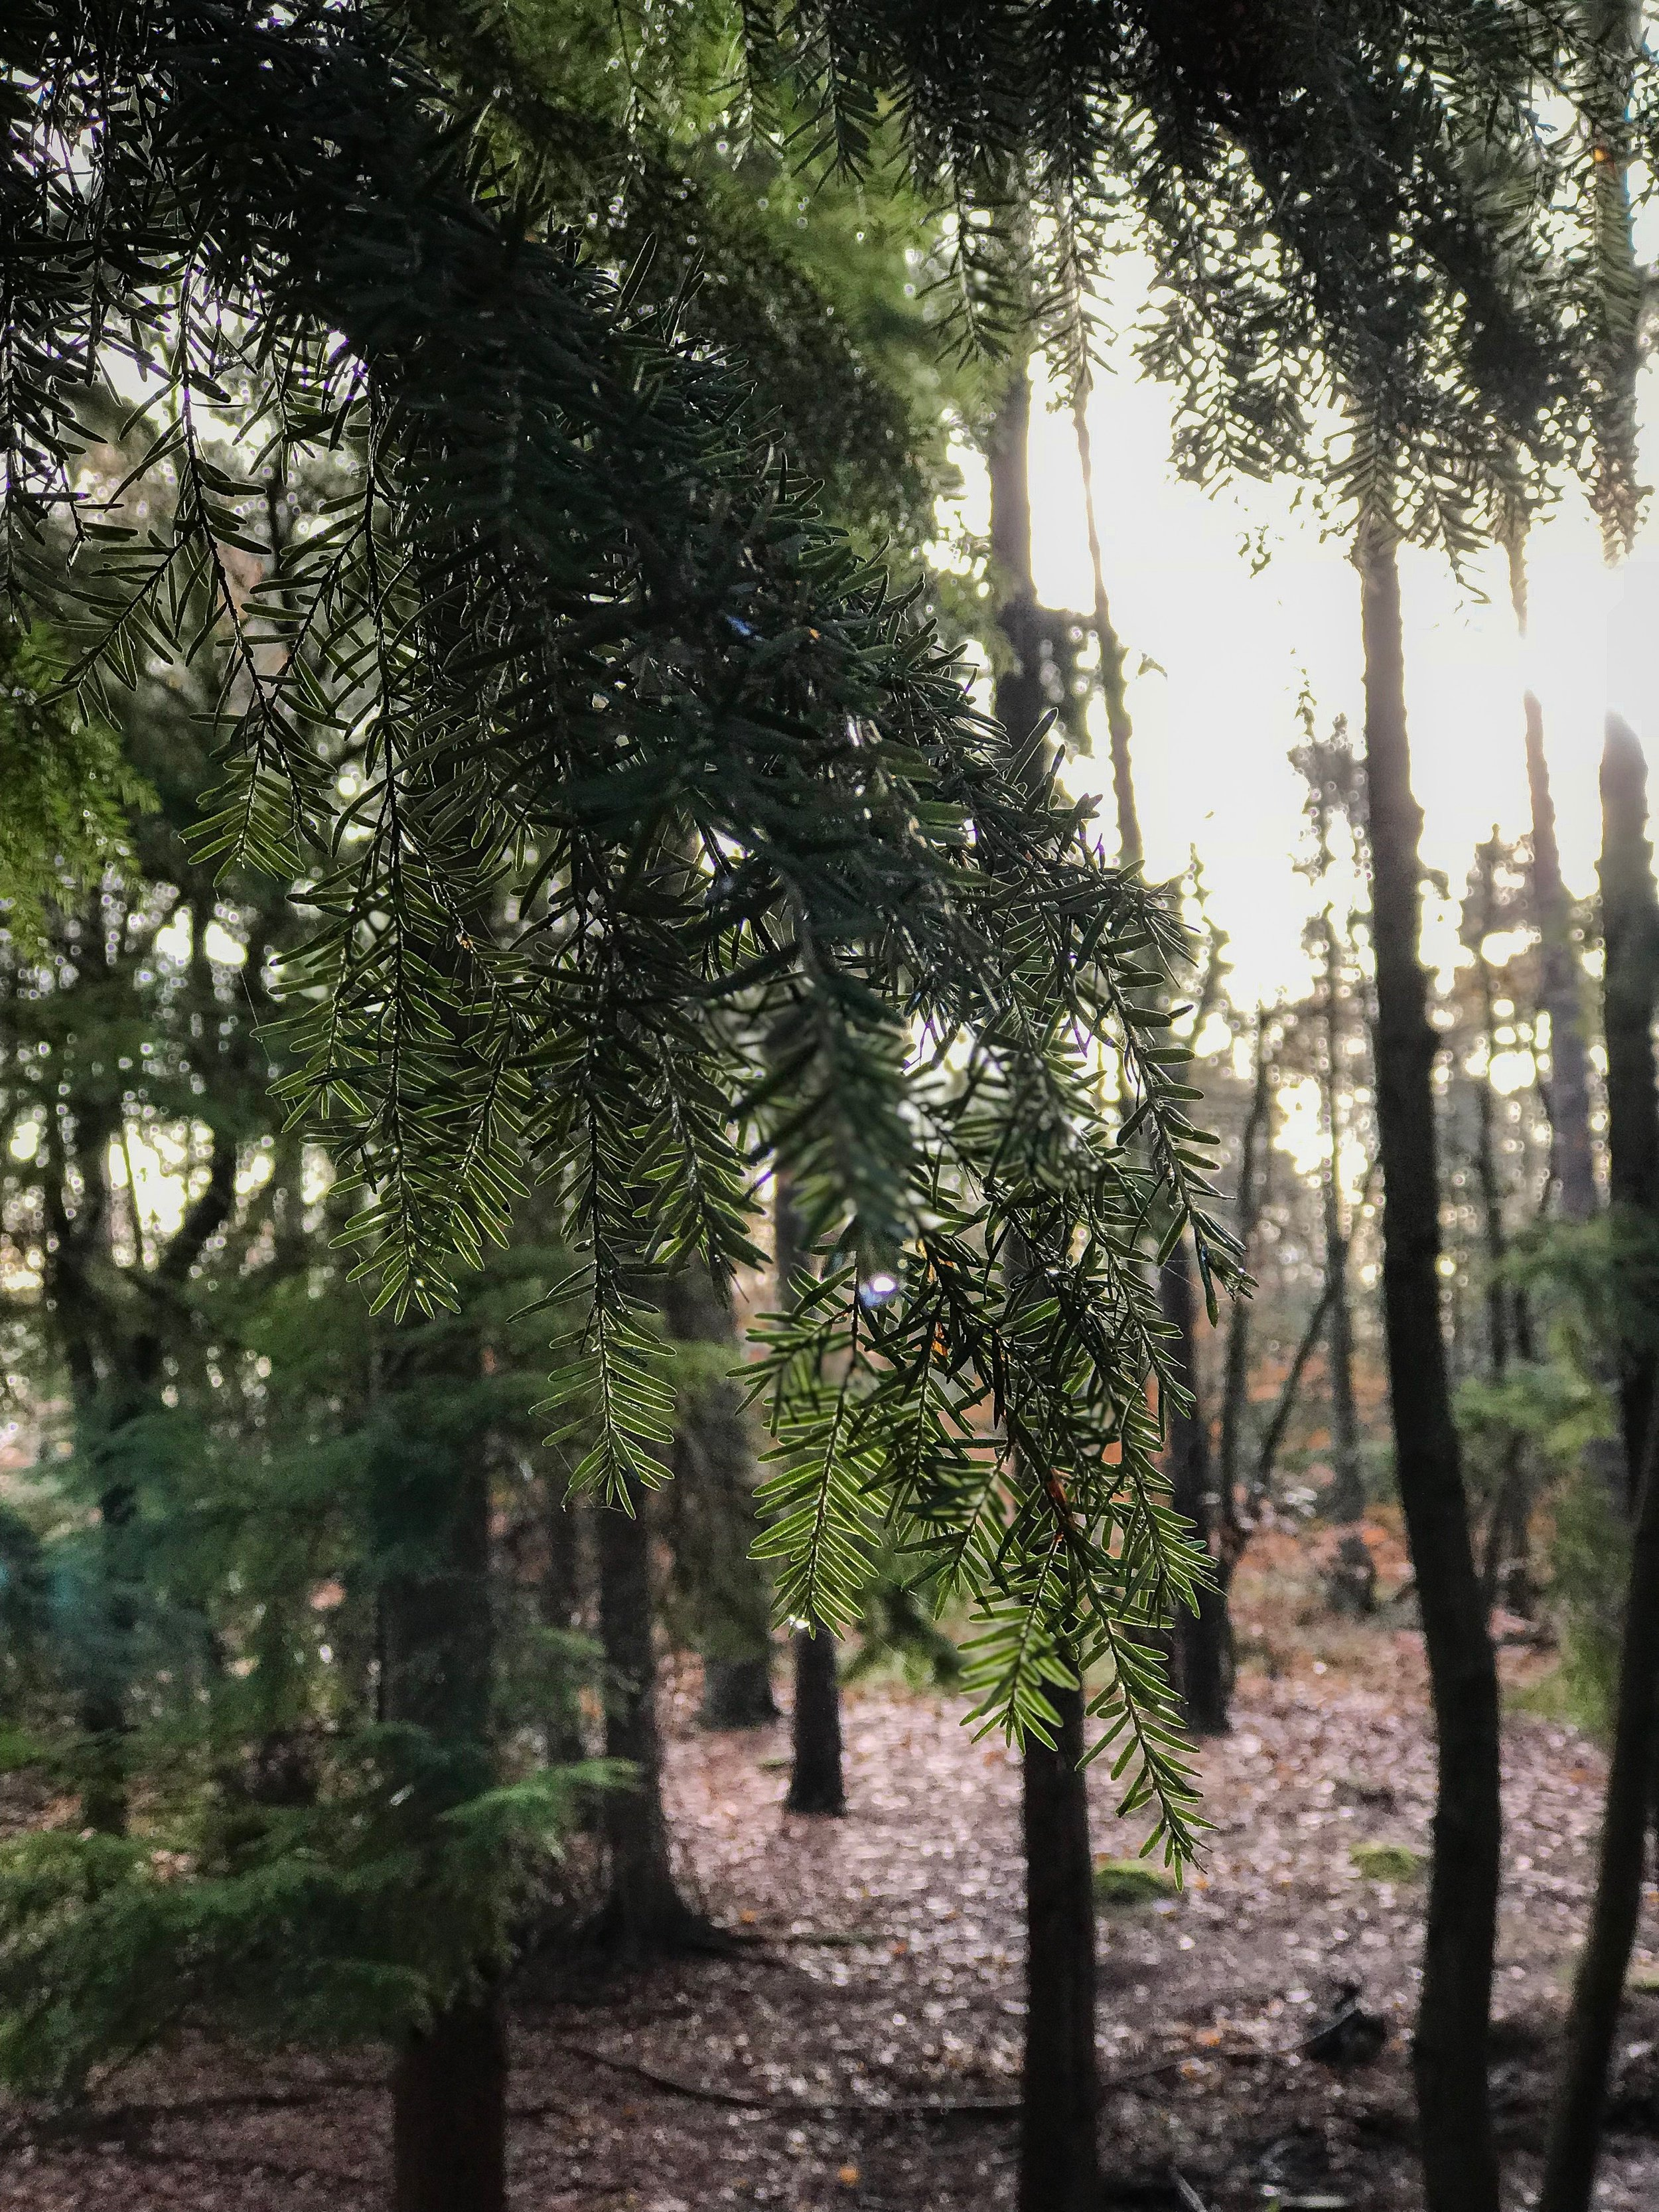 The beautiful forest adjacent to the heath